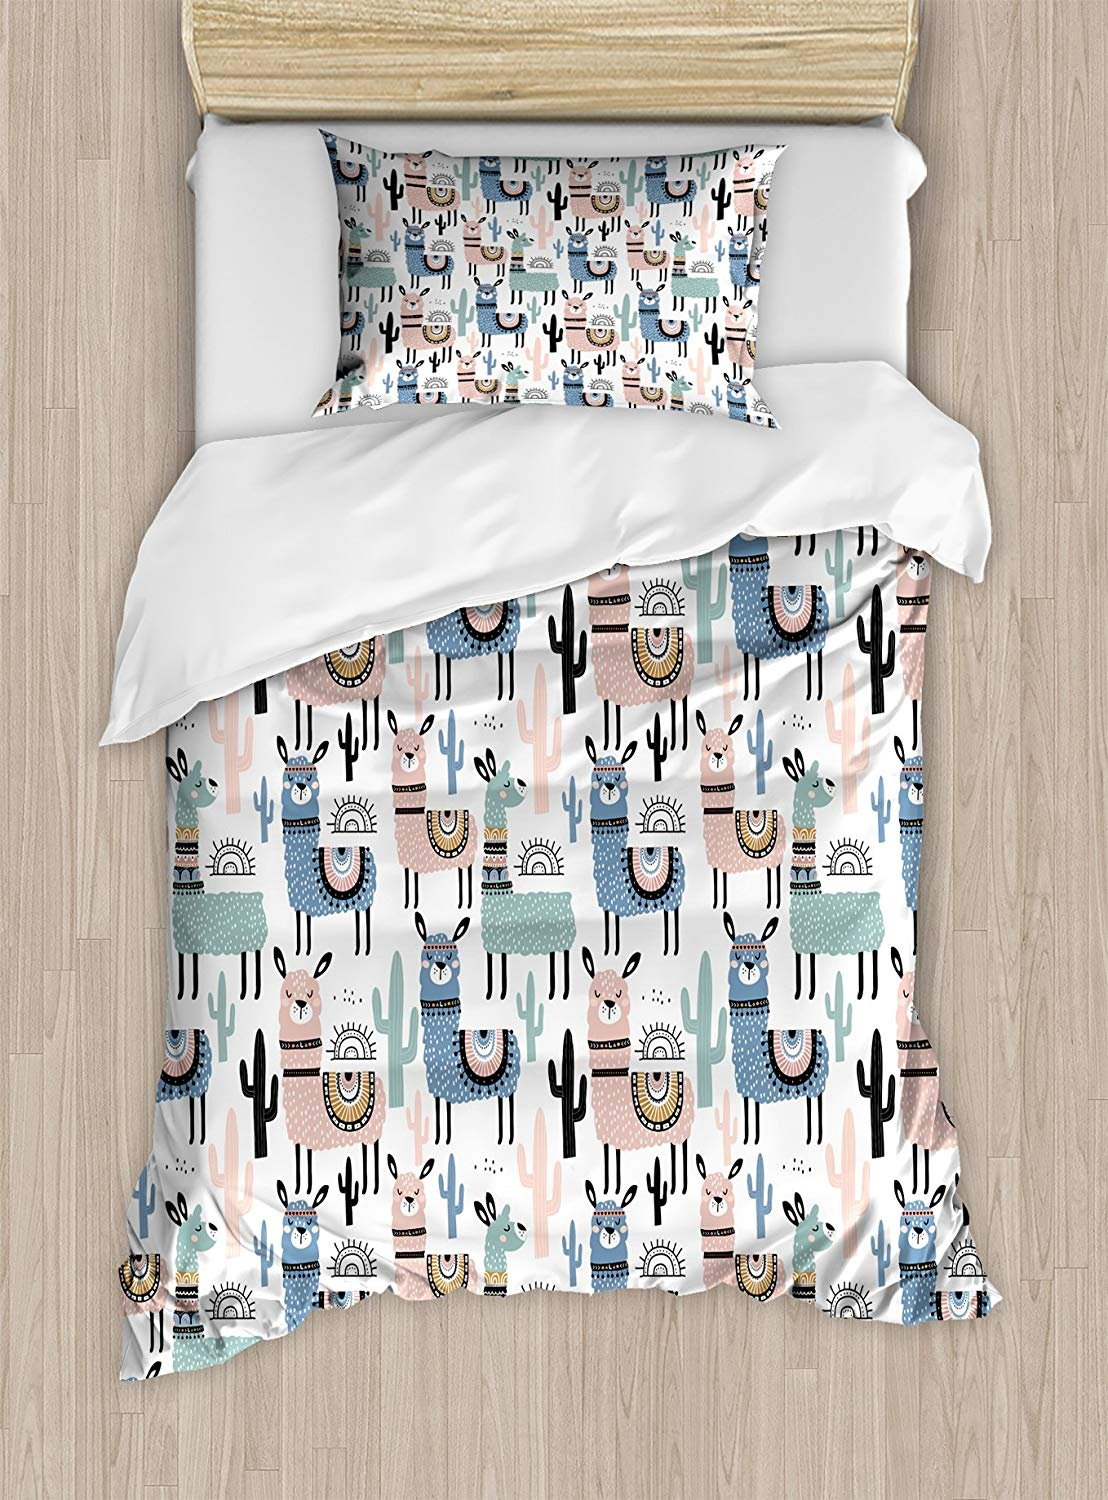 Twin XL Extra Long Bedding Set,Llama Duvet Cover Set,Children Cartoon Style Hand Drawn South American Animals Alpacas and Llamas Design,Cosy House Collection 4 Piece Bedding Setss